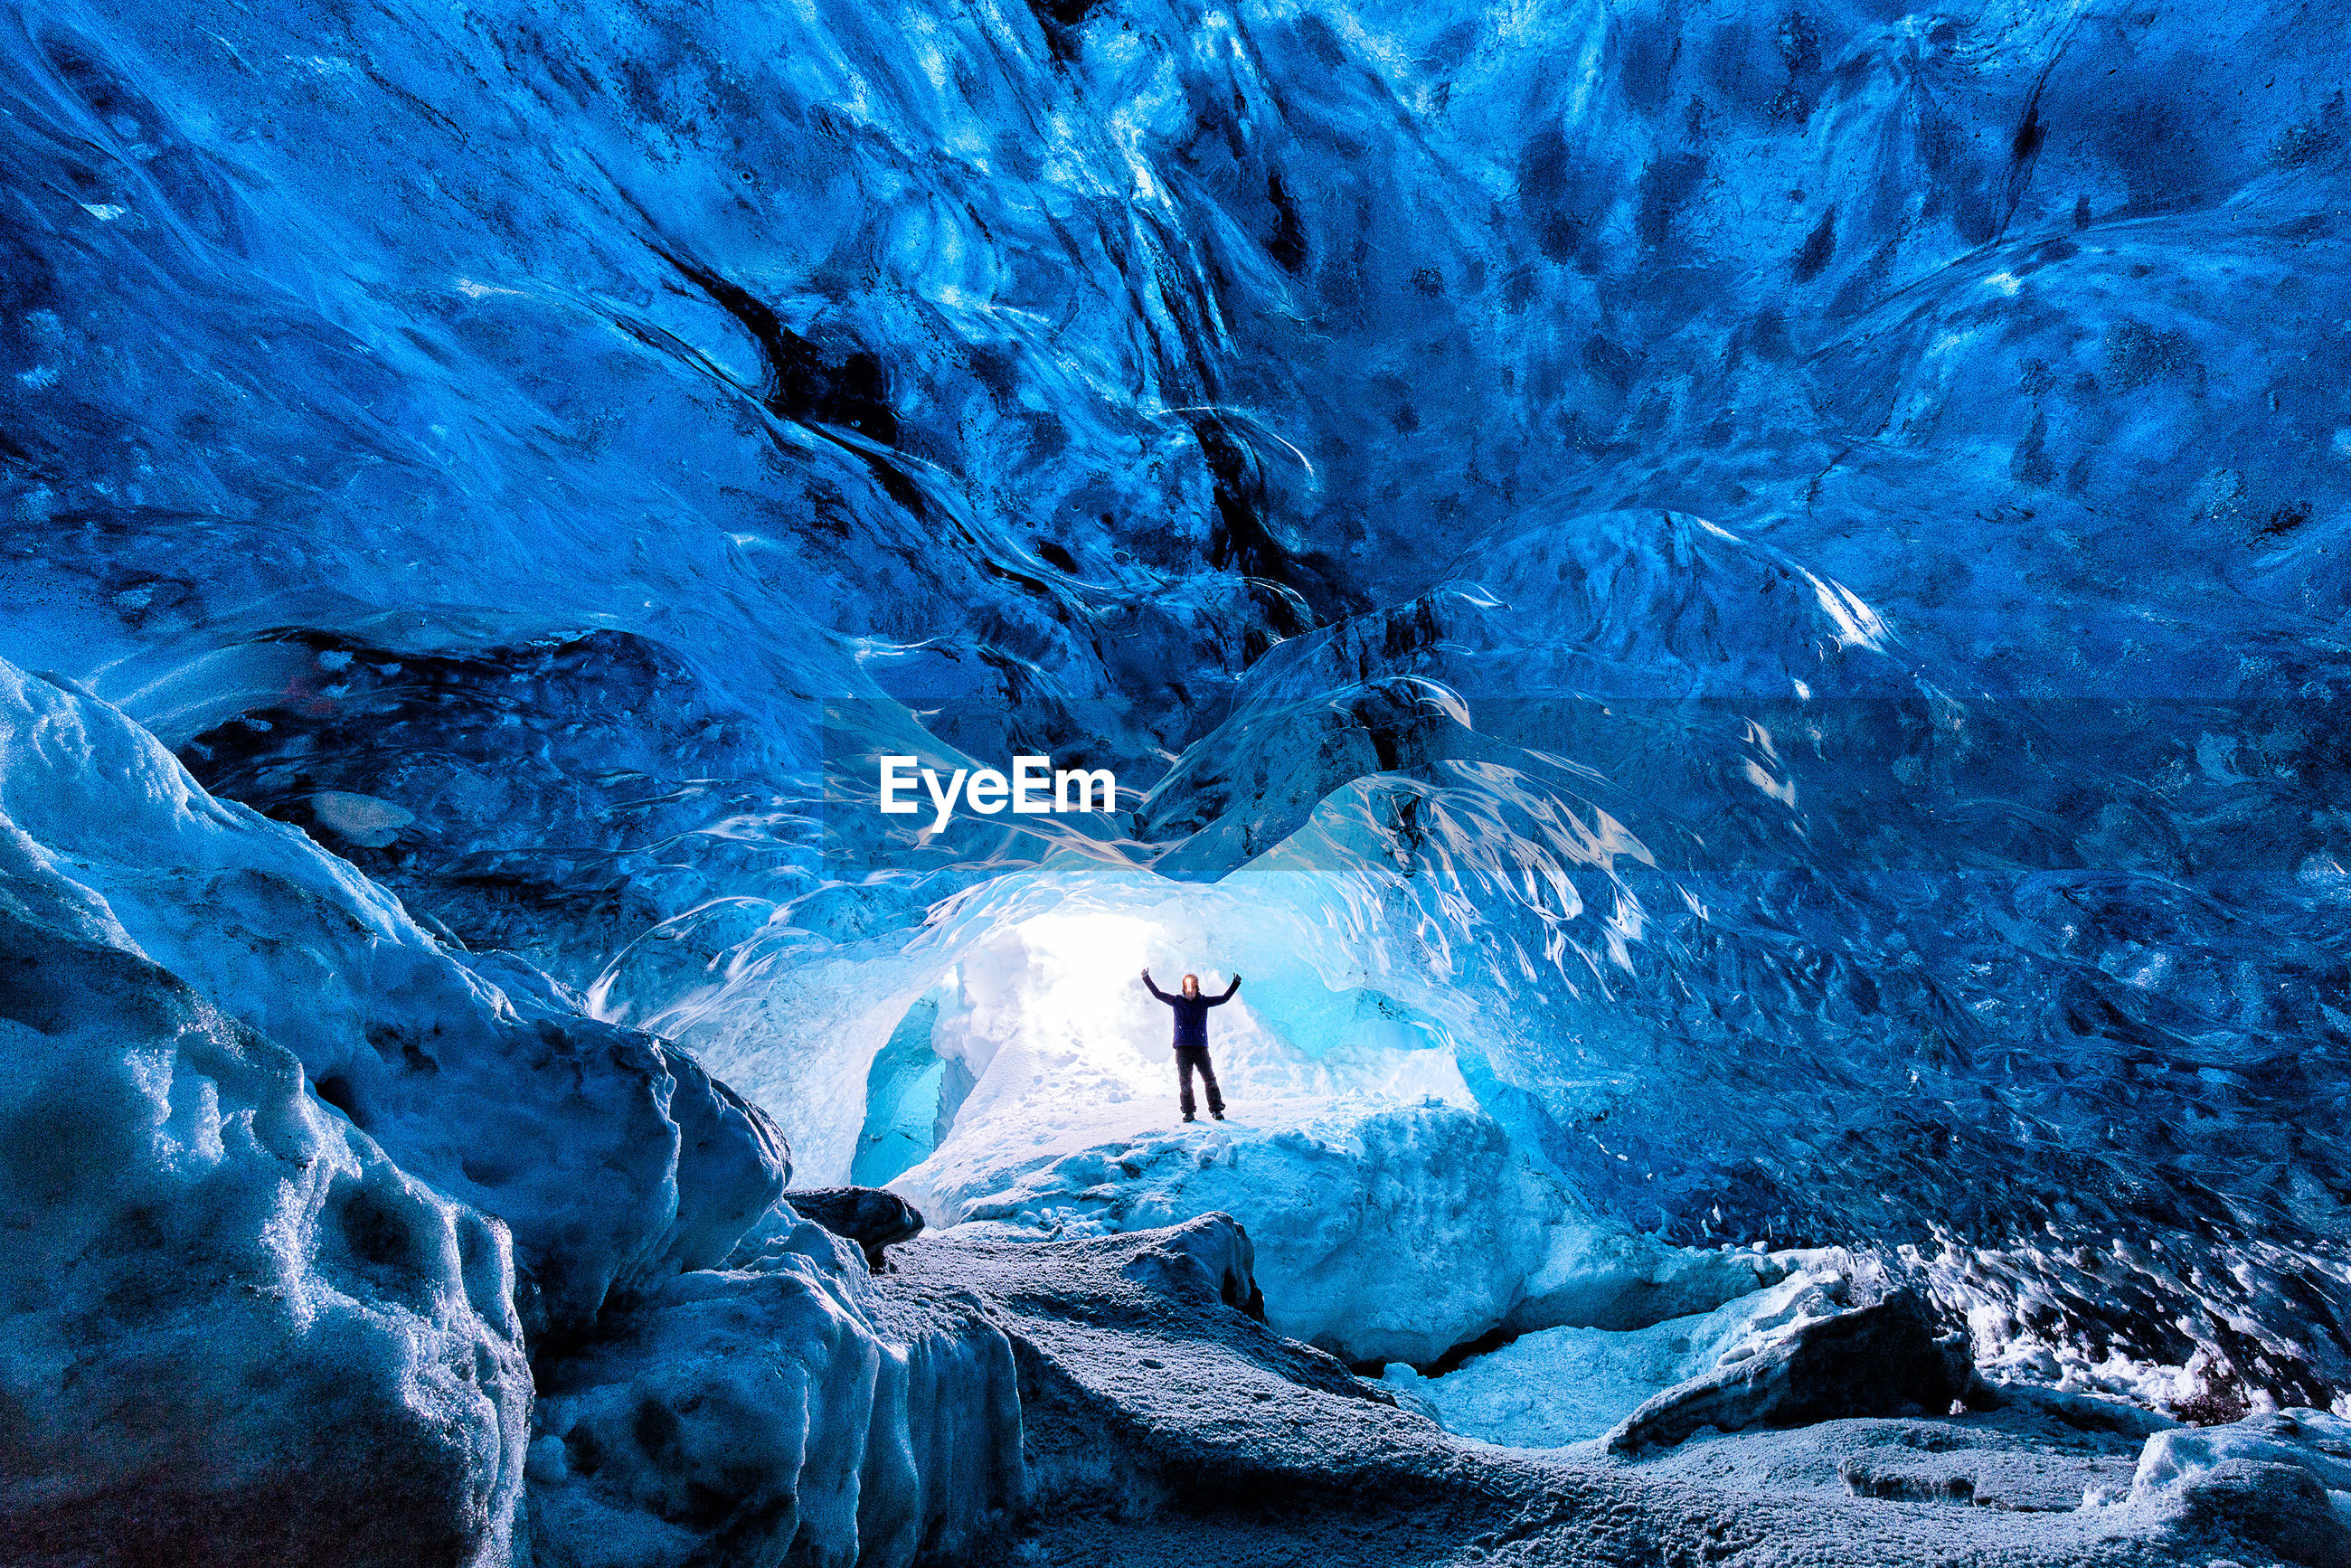 Excited person standing in ice cave